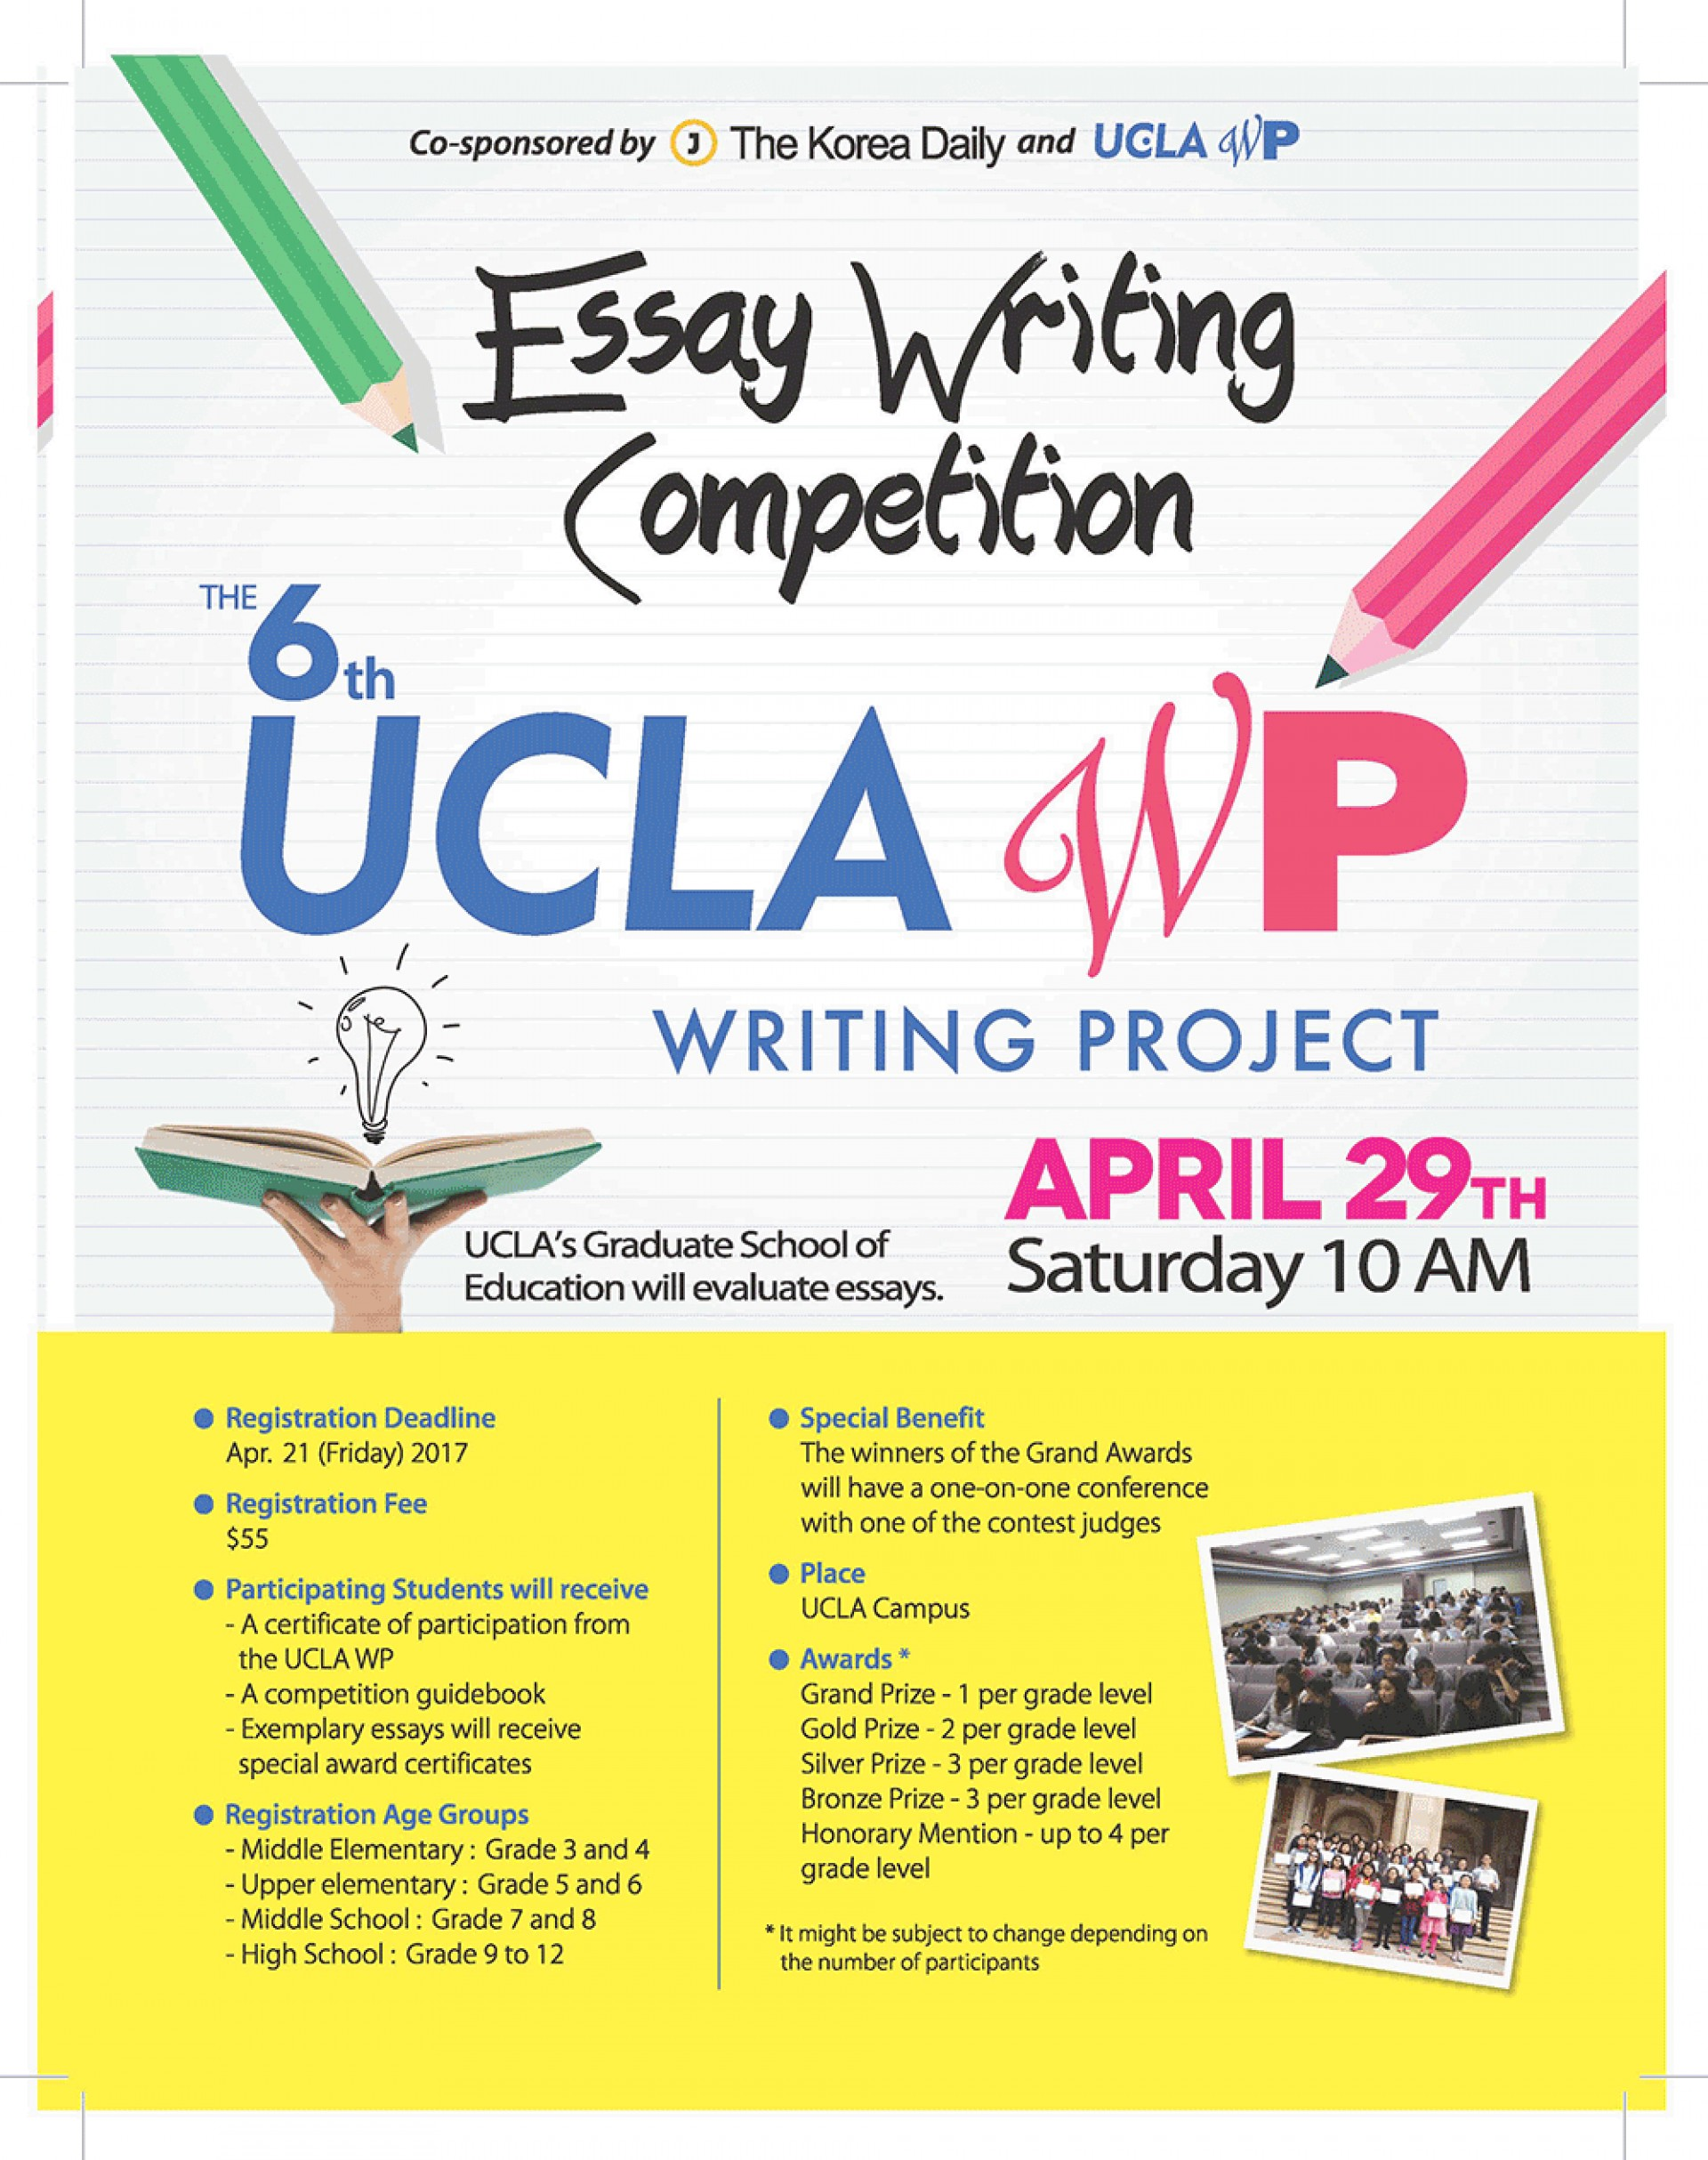 017 Uclakoreandaily Flyer Essay Contest Middle School Breathtaking Competition For Creative Writing Curriculum Online High Students 1920